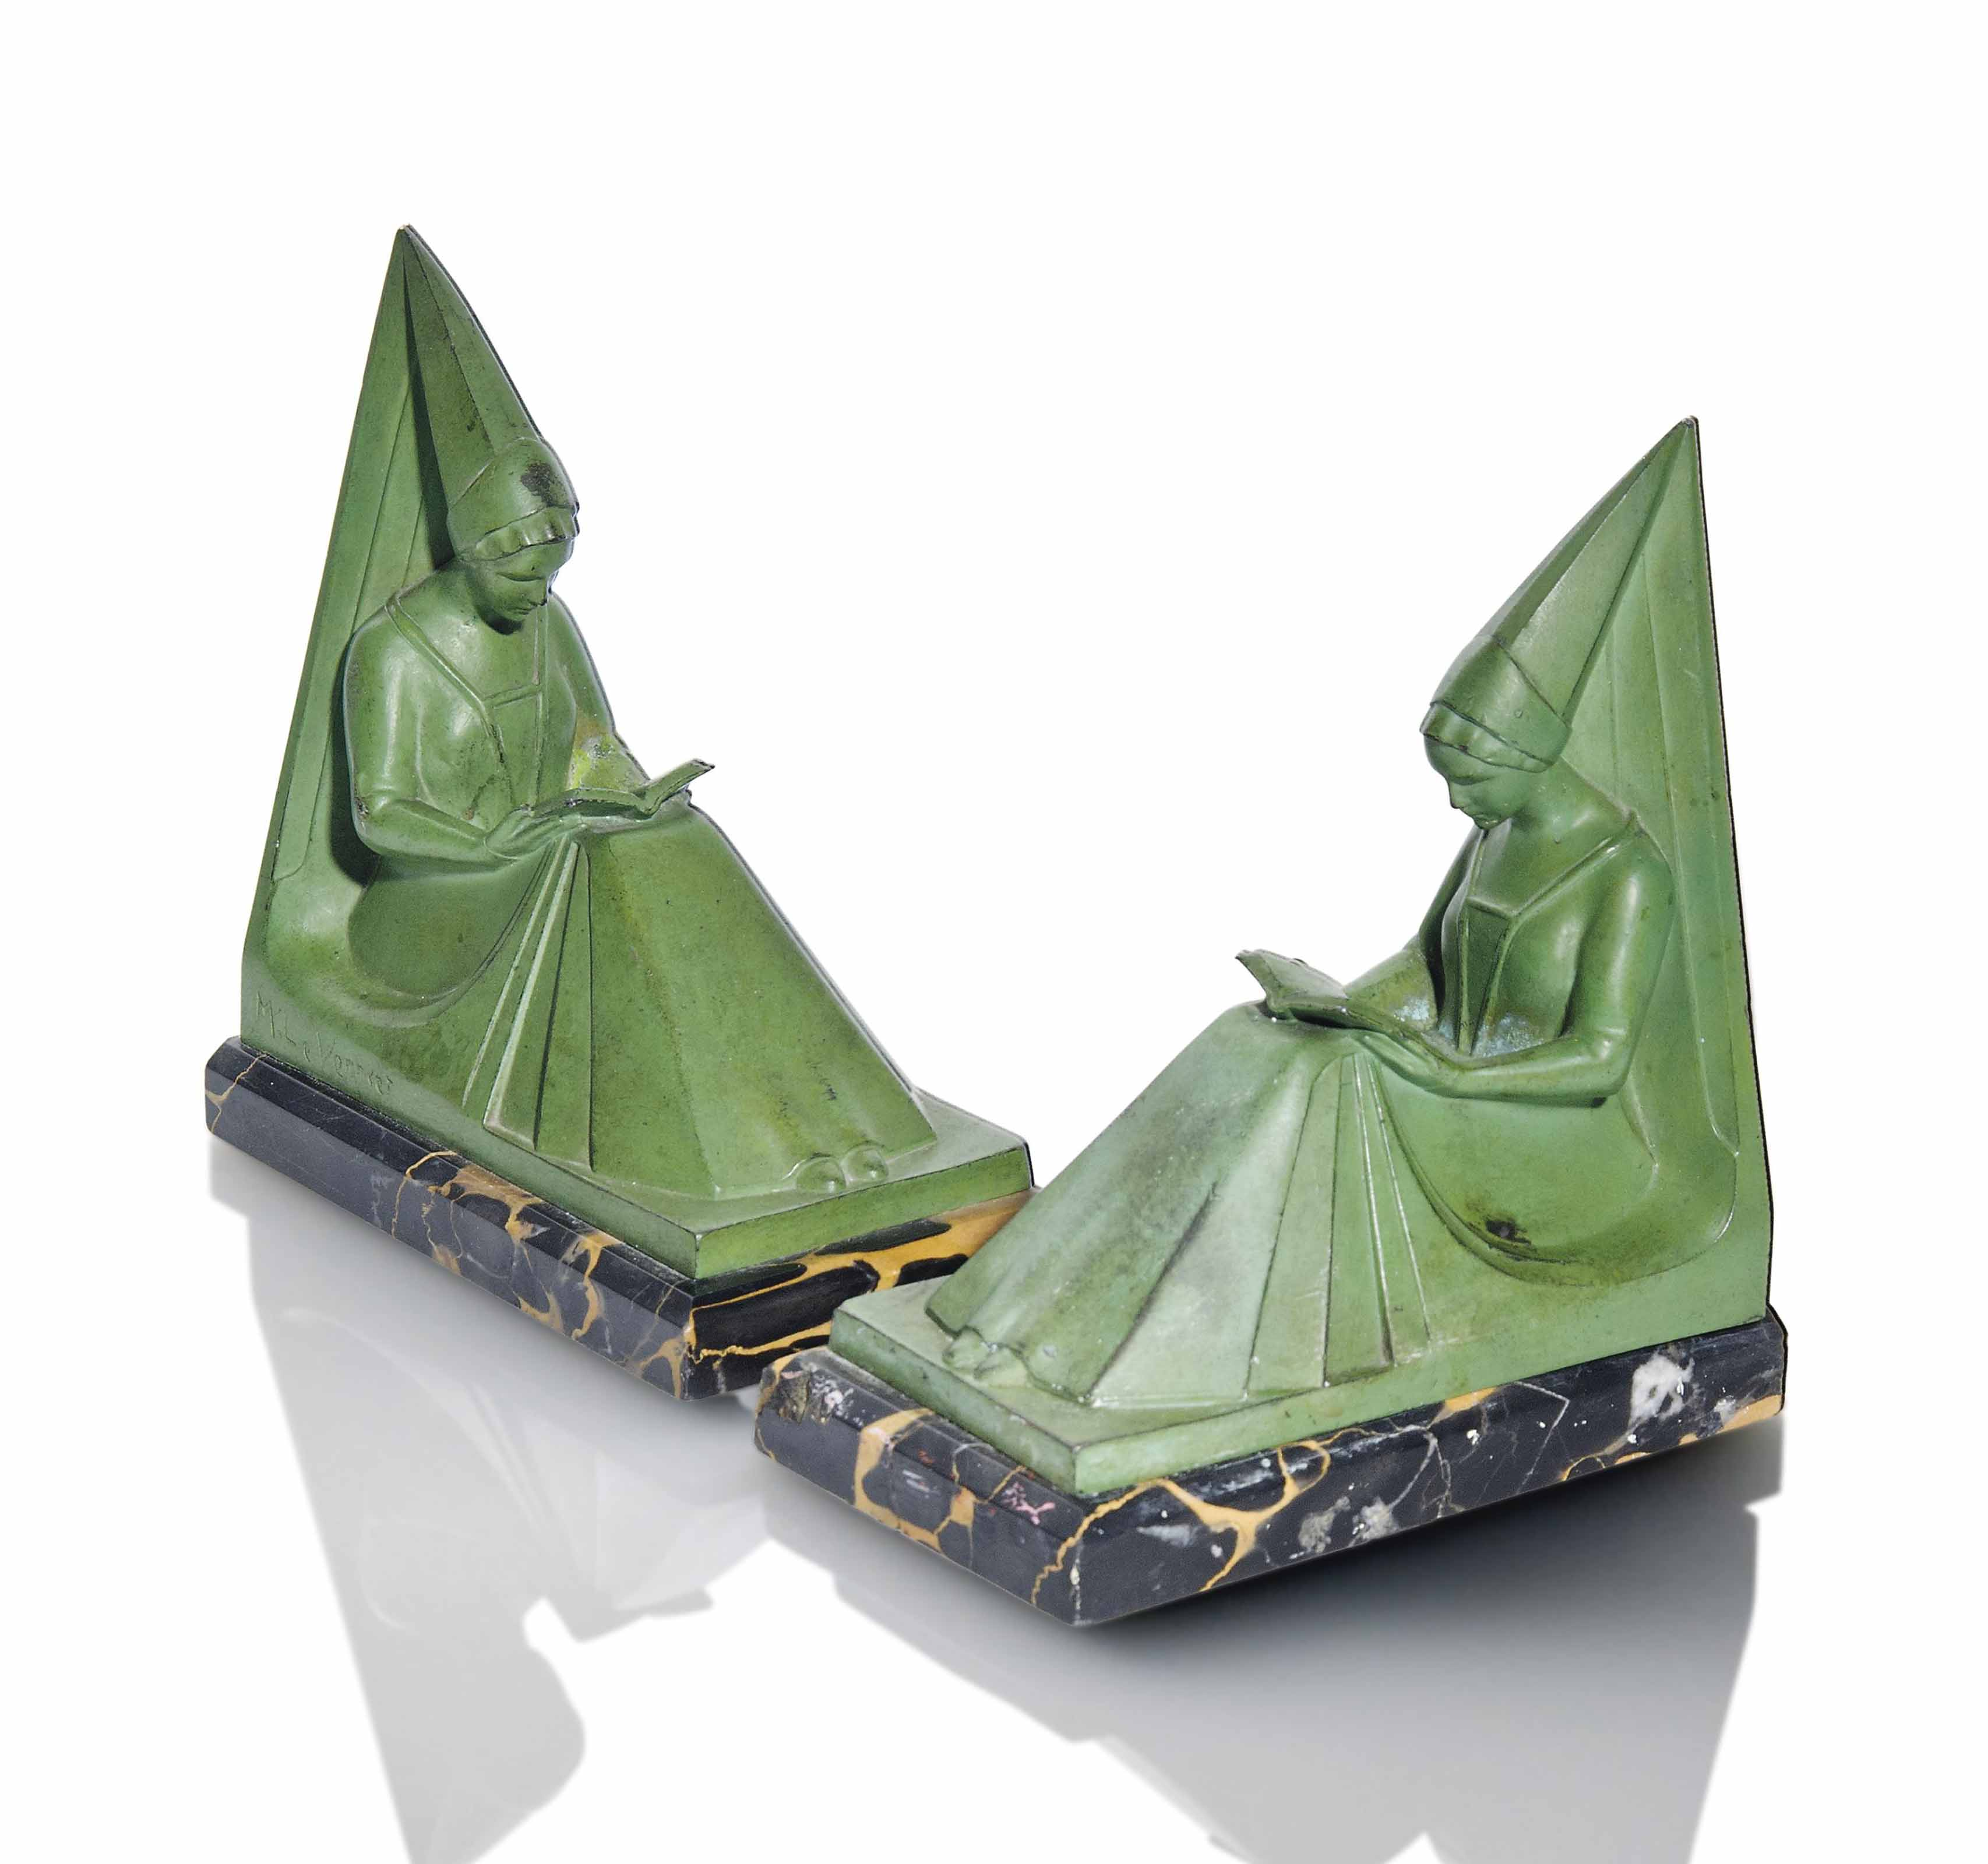 A PAIR OF MAX LE VERRIER (1891-1973) COLD-PAINTED SPELTER BOOKENDS